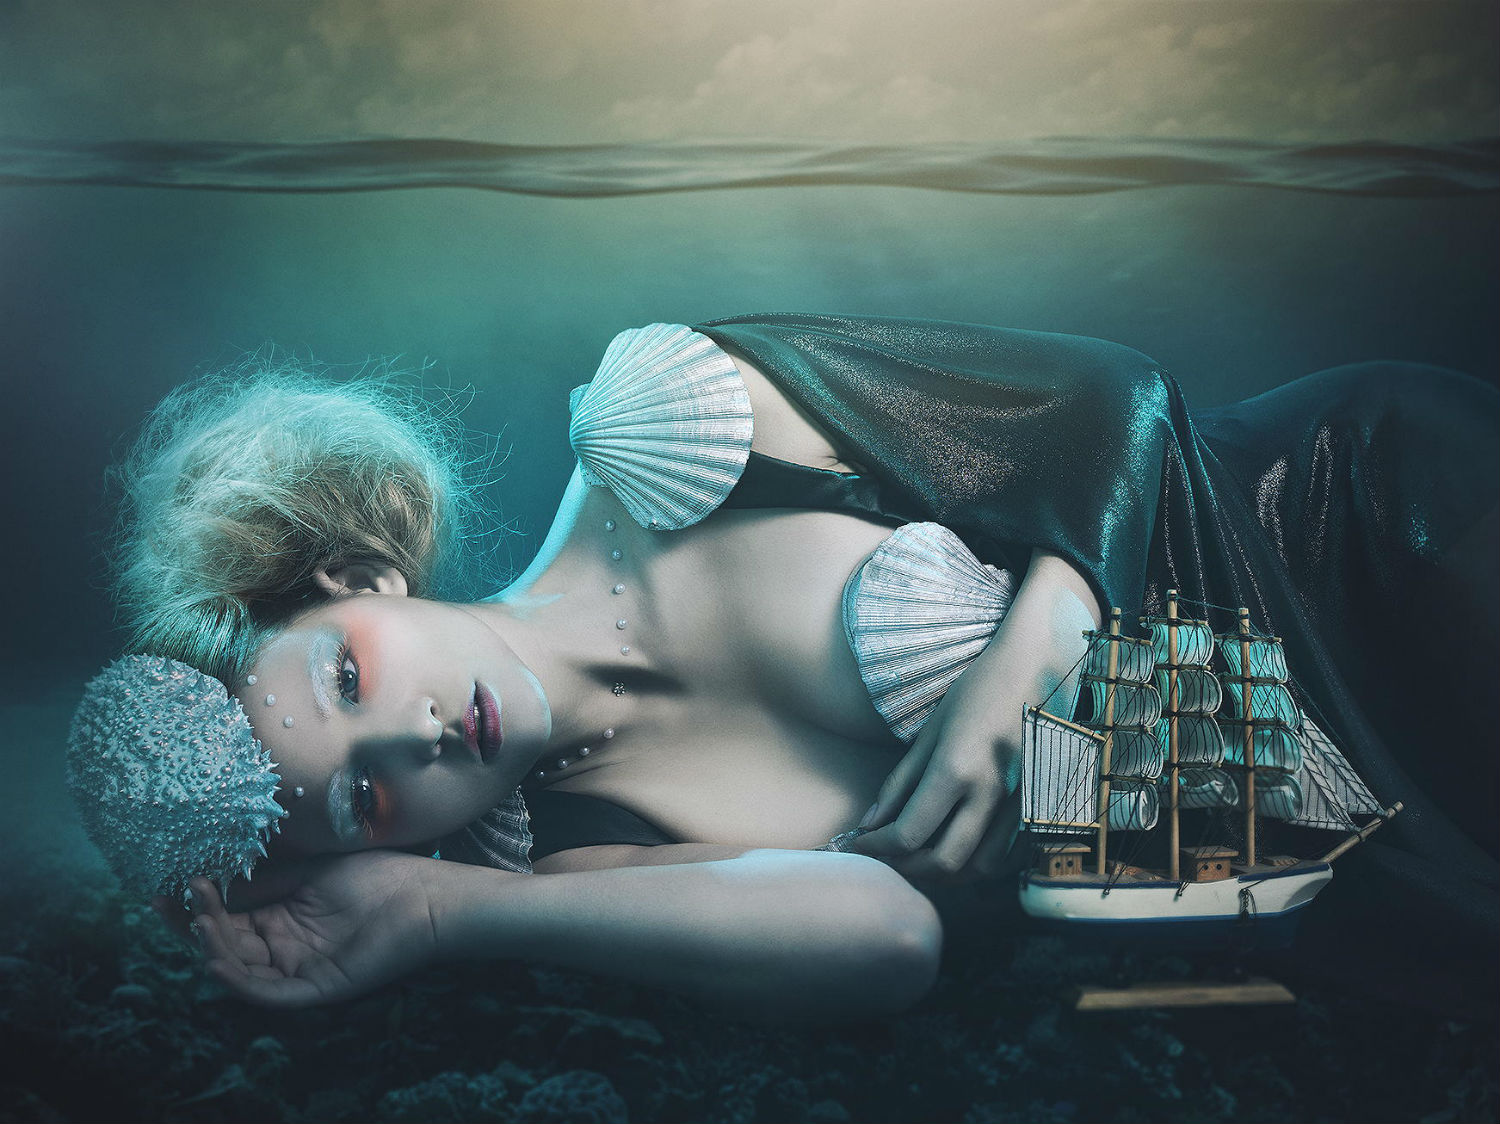 rebecca saray photography surreal Digital fantasy ship sea